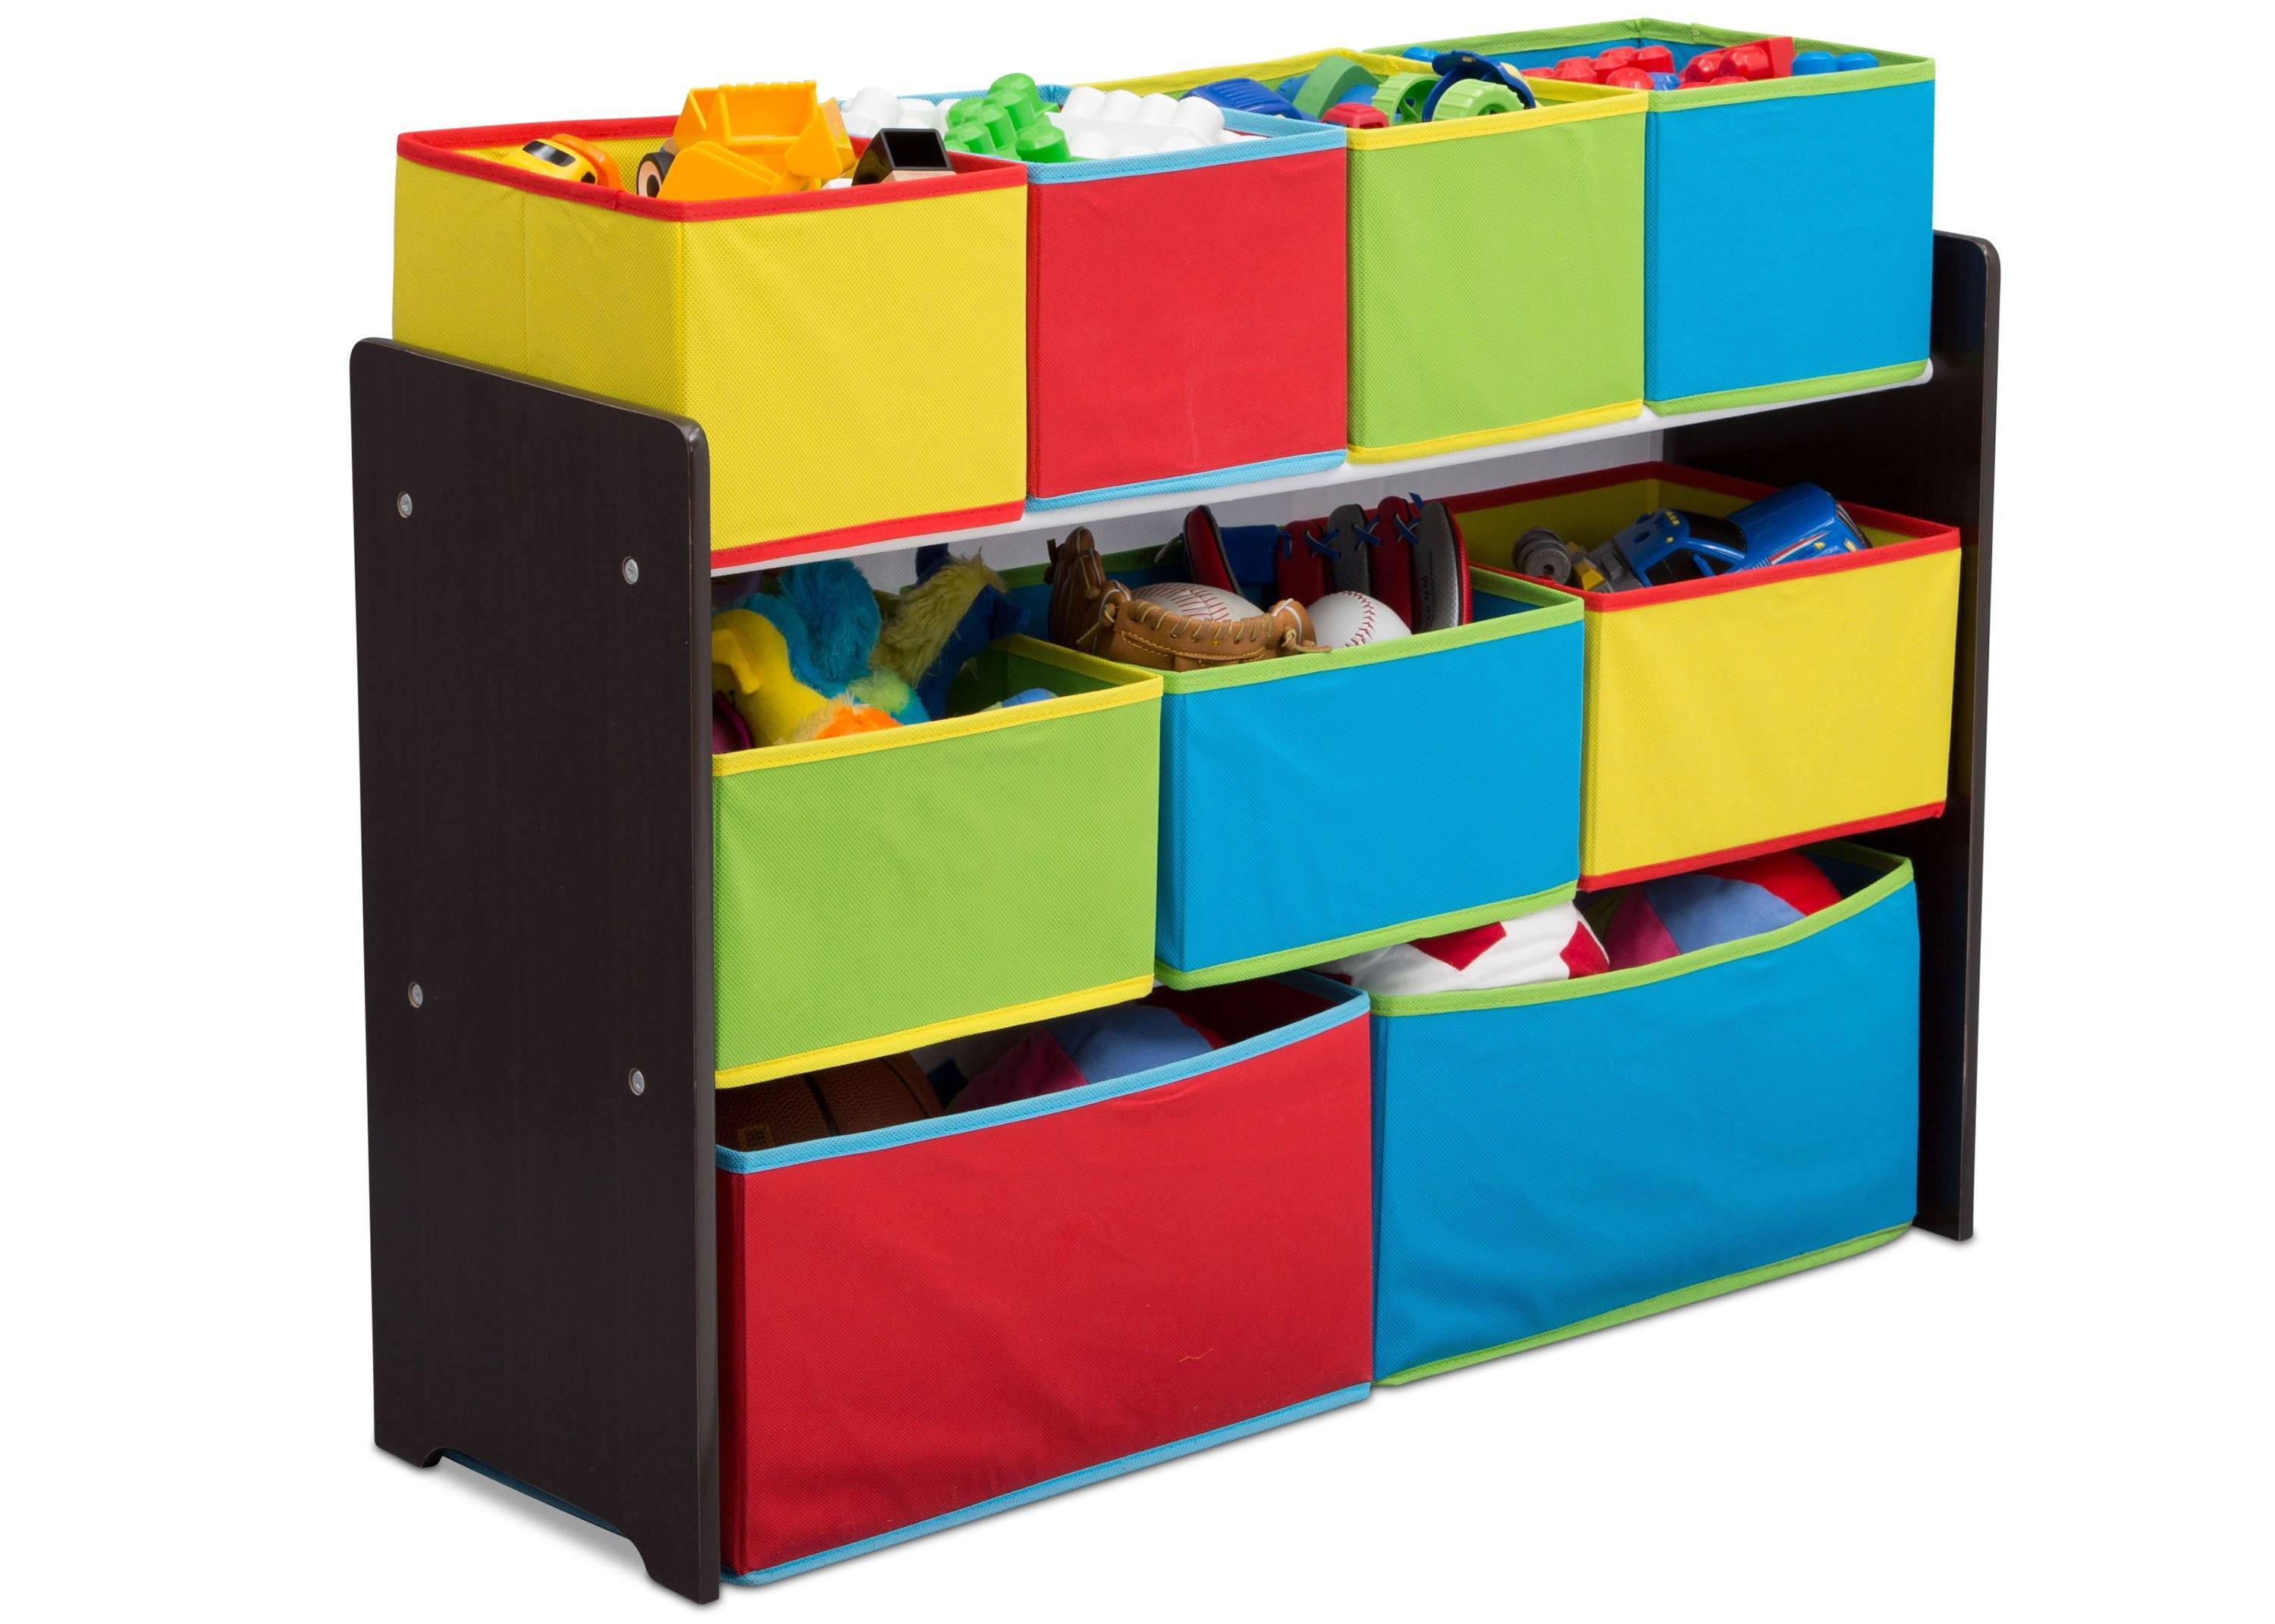 Beau Delta Children Deluxe Multi Bin Toy Organizer With Storage Bins, Dark  Chocolate/Primary ...